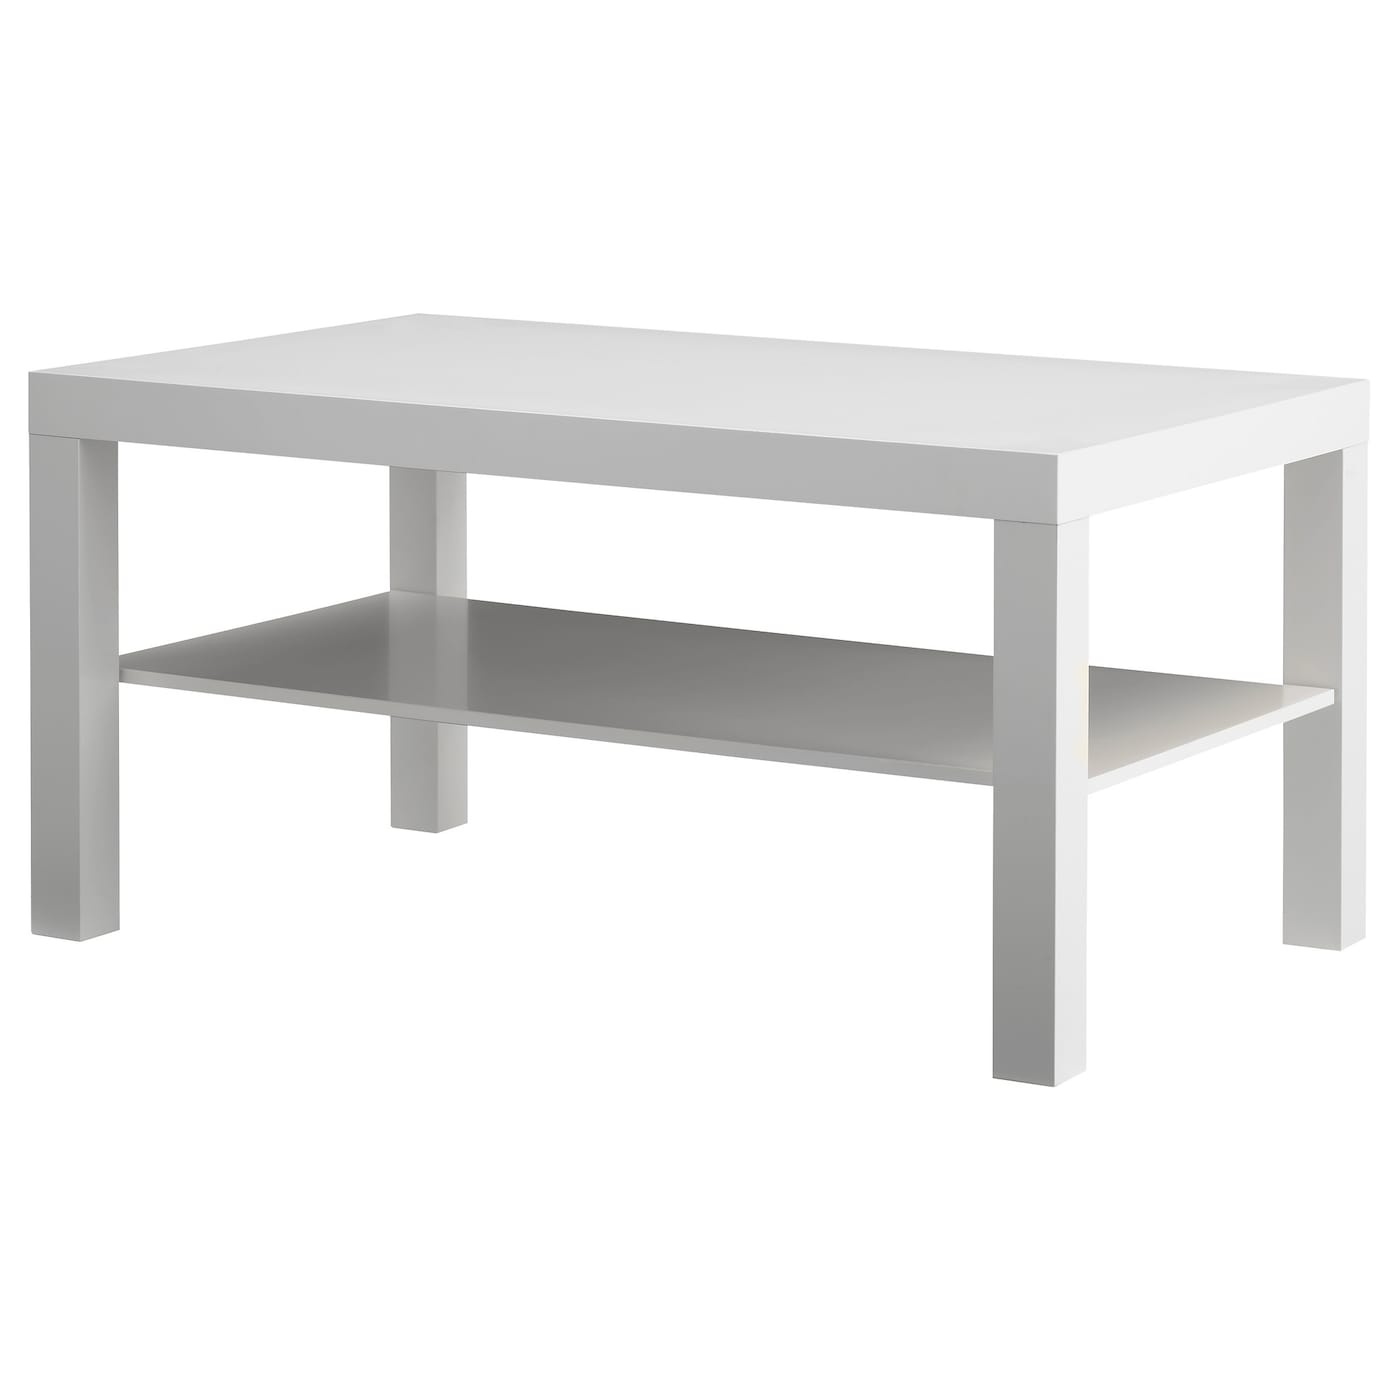 Lack coffee table white 90x55 cm ikea - Table basse plateau relevable ikea ...